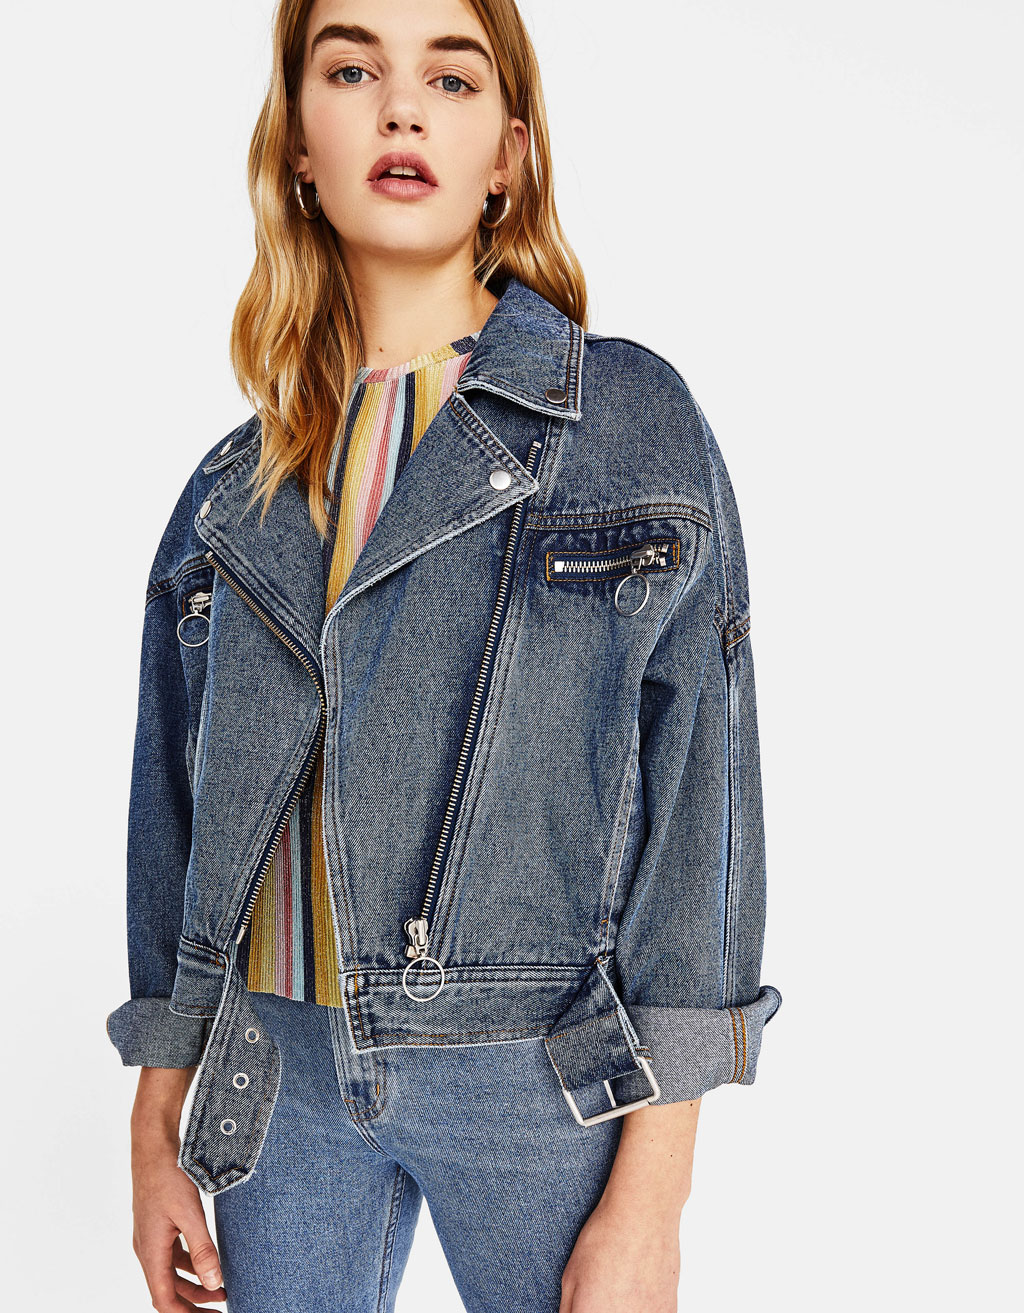 Denimjakke i bikerstil